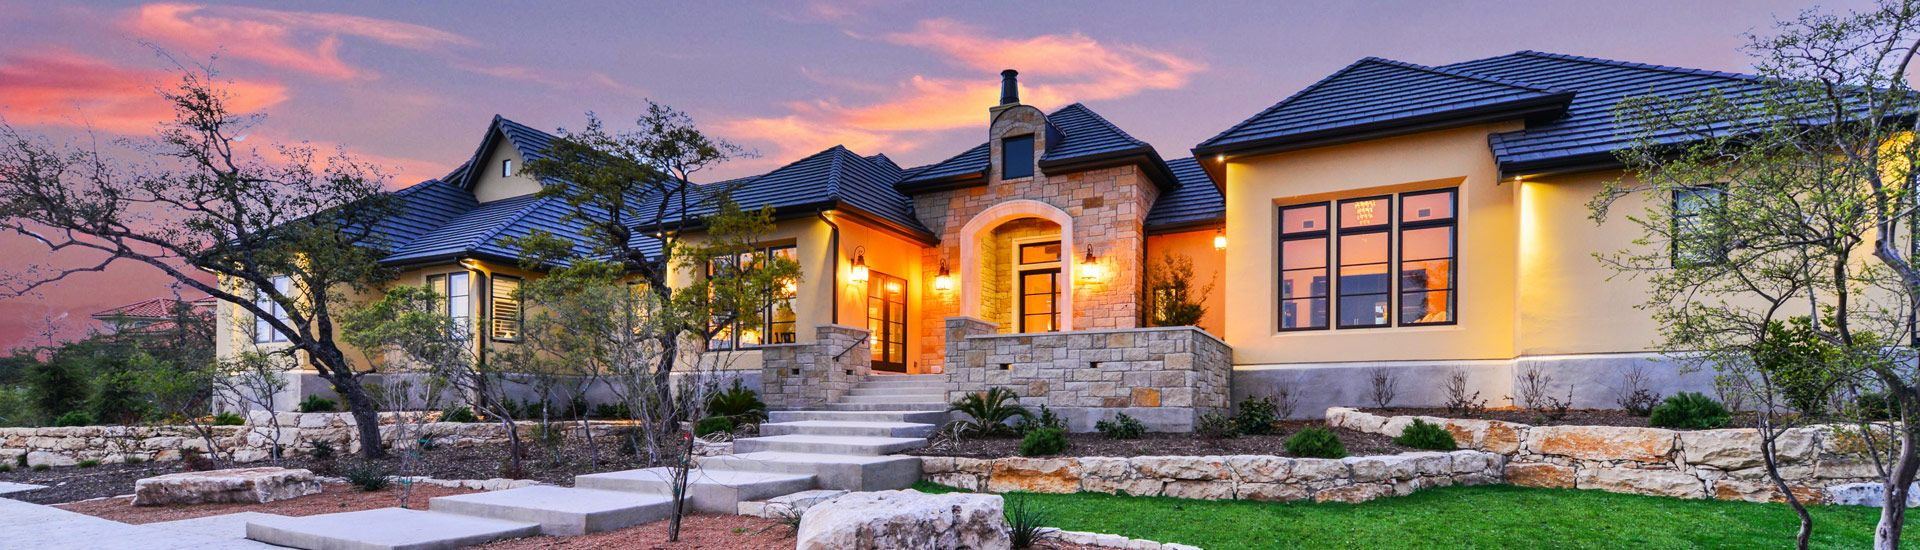 sitterle homes builds a wide range of homes from patio homes to - Houston Home And Garden Magazine